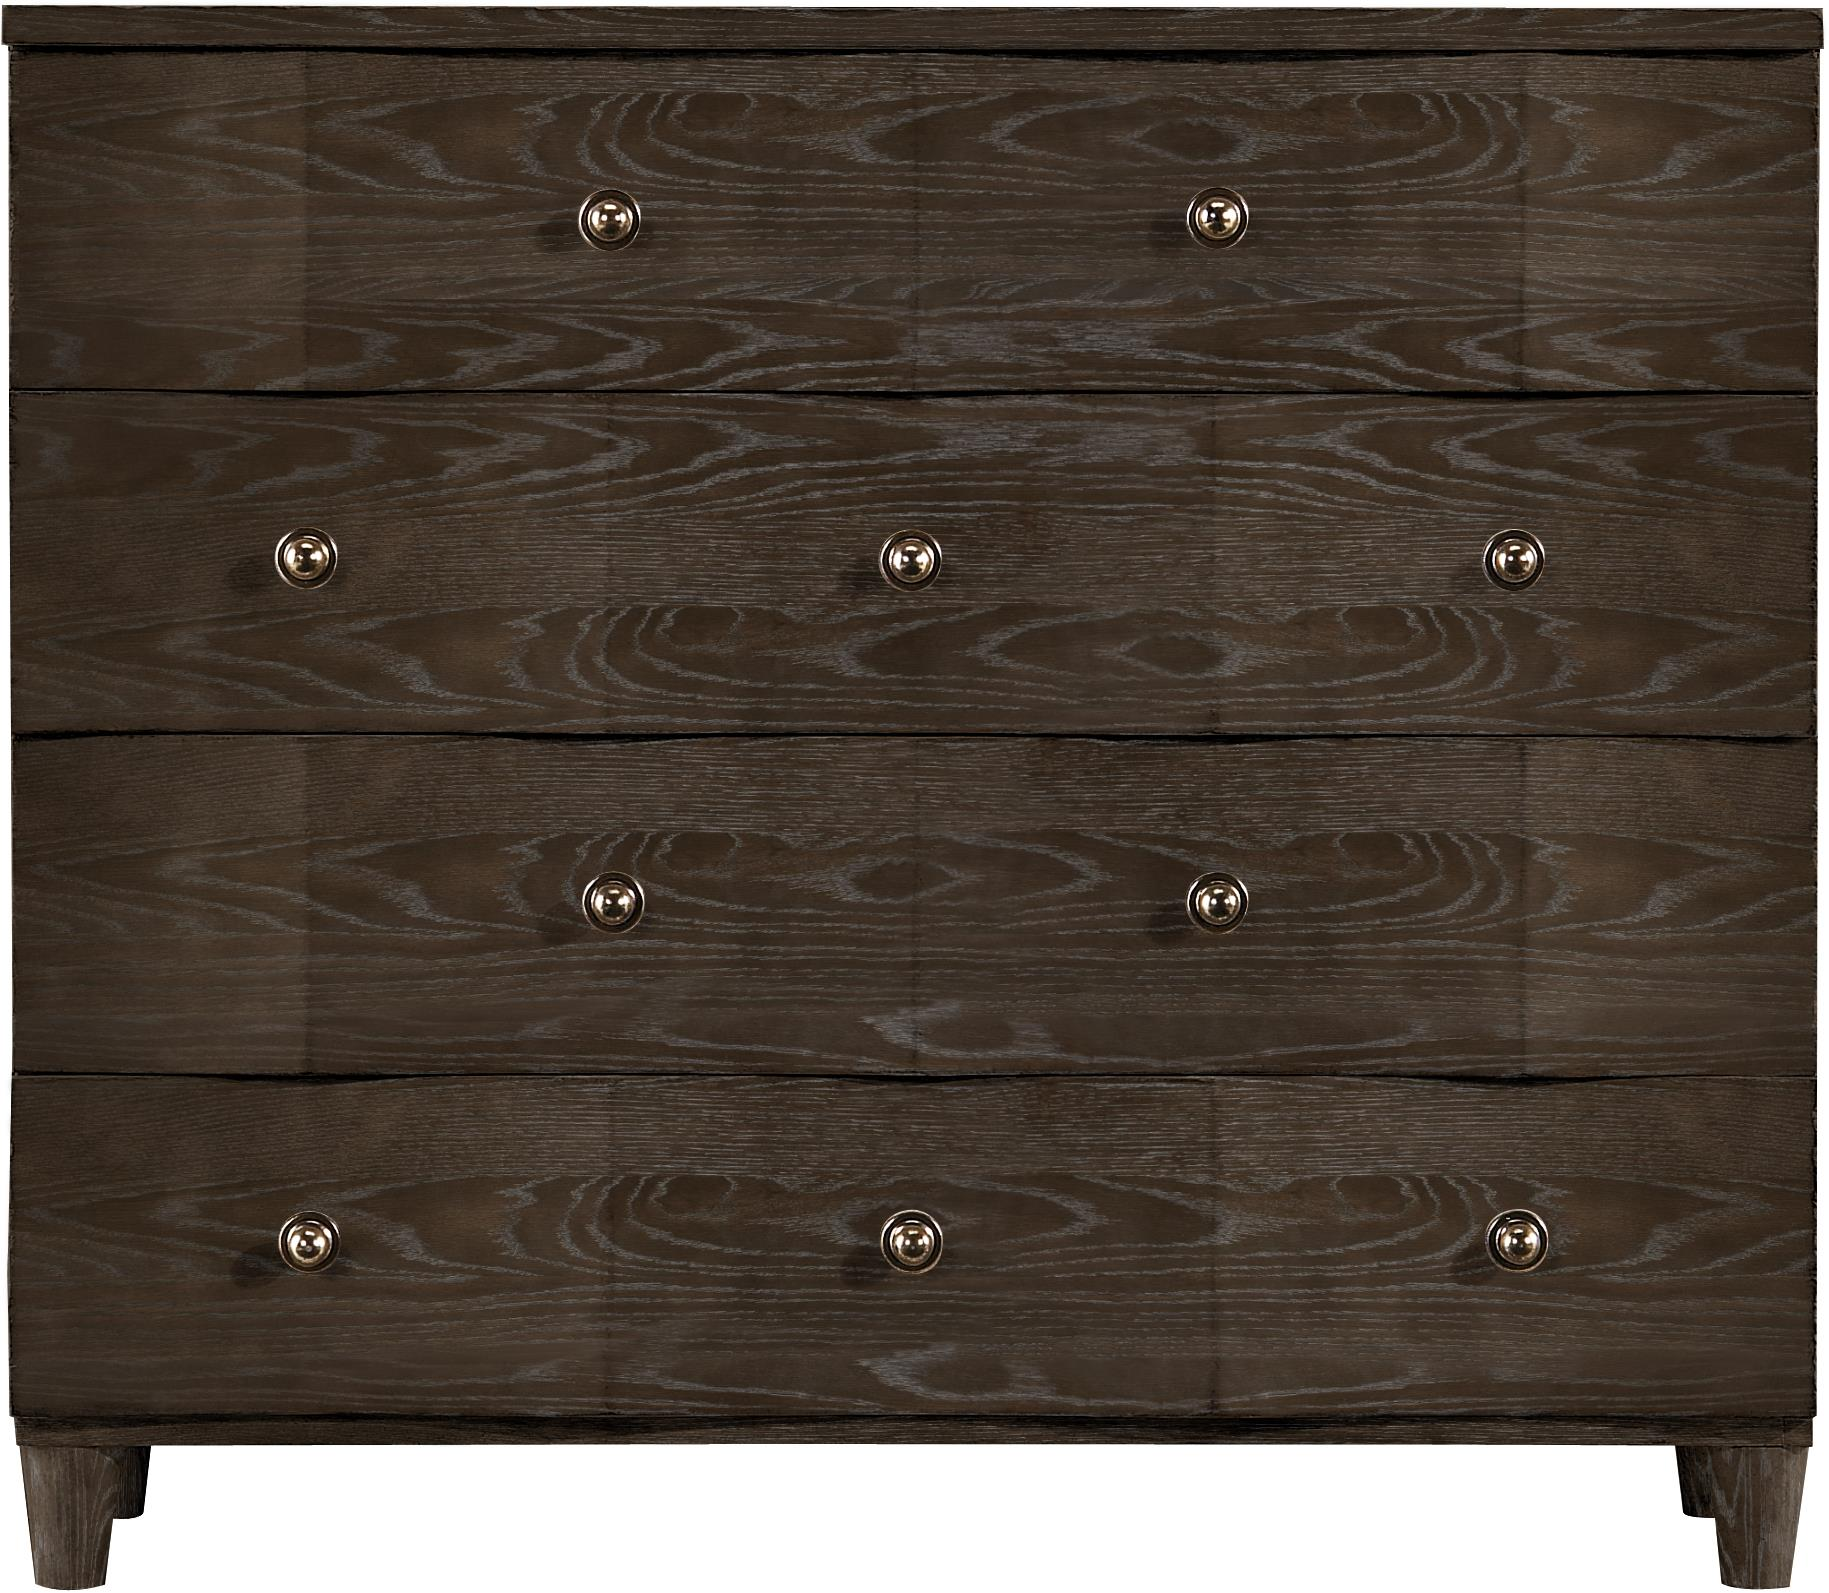 Stanley Furniture Coastal Living Resort Ocean Breaker Dresser - Item Number: 062-13-02